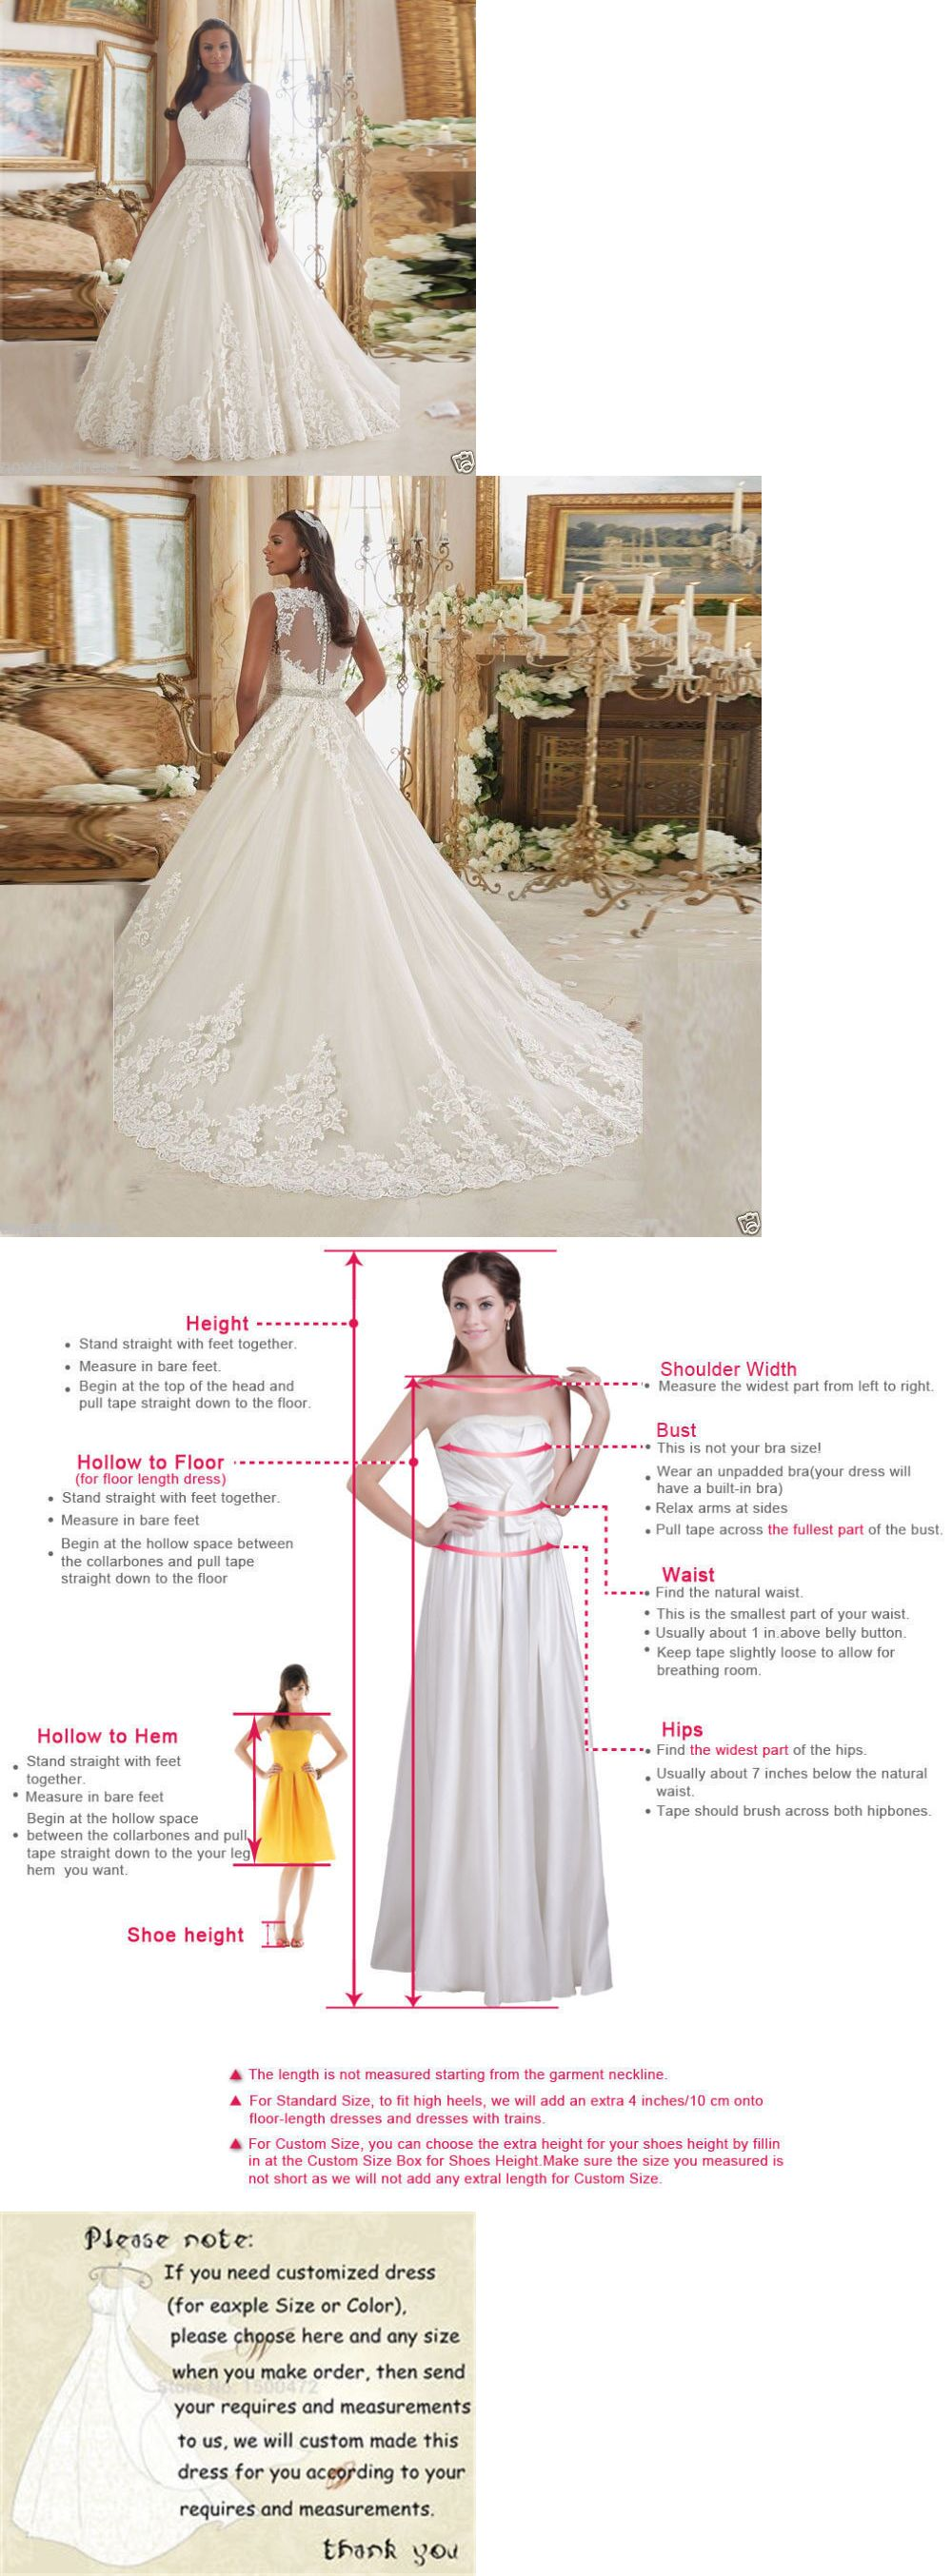 Best wedding dress for size 20  Wedding Dresses  Plus Size White Ivory Bridal Gown Lace